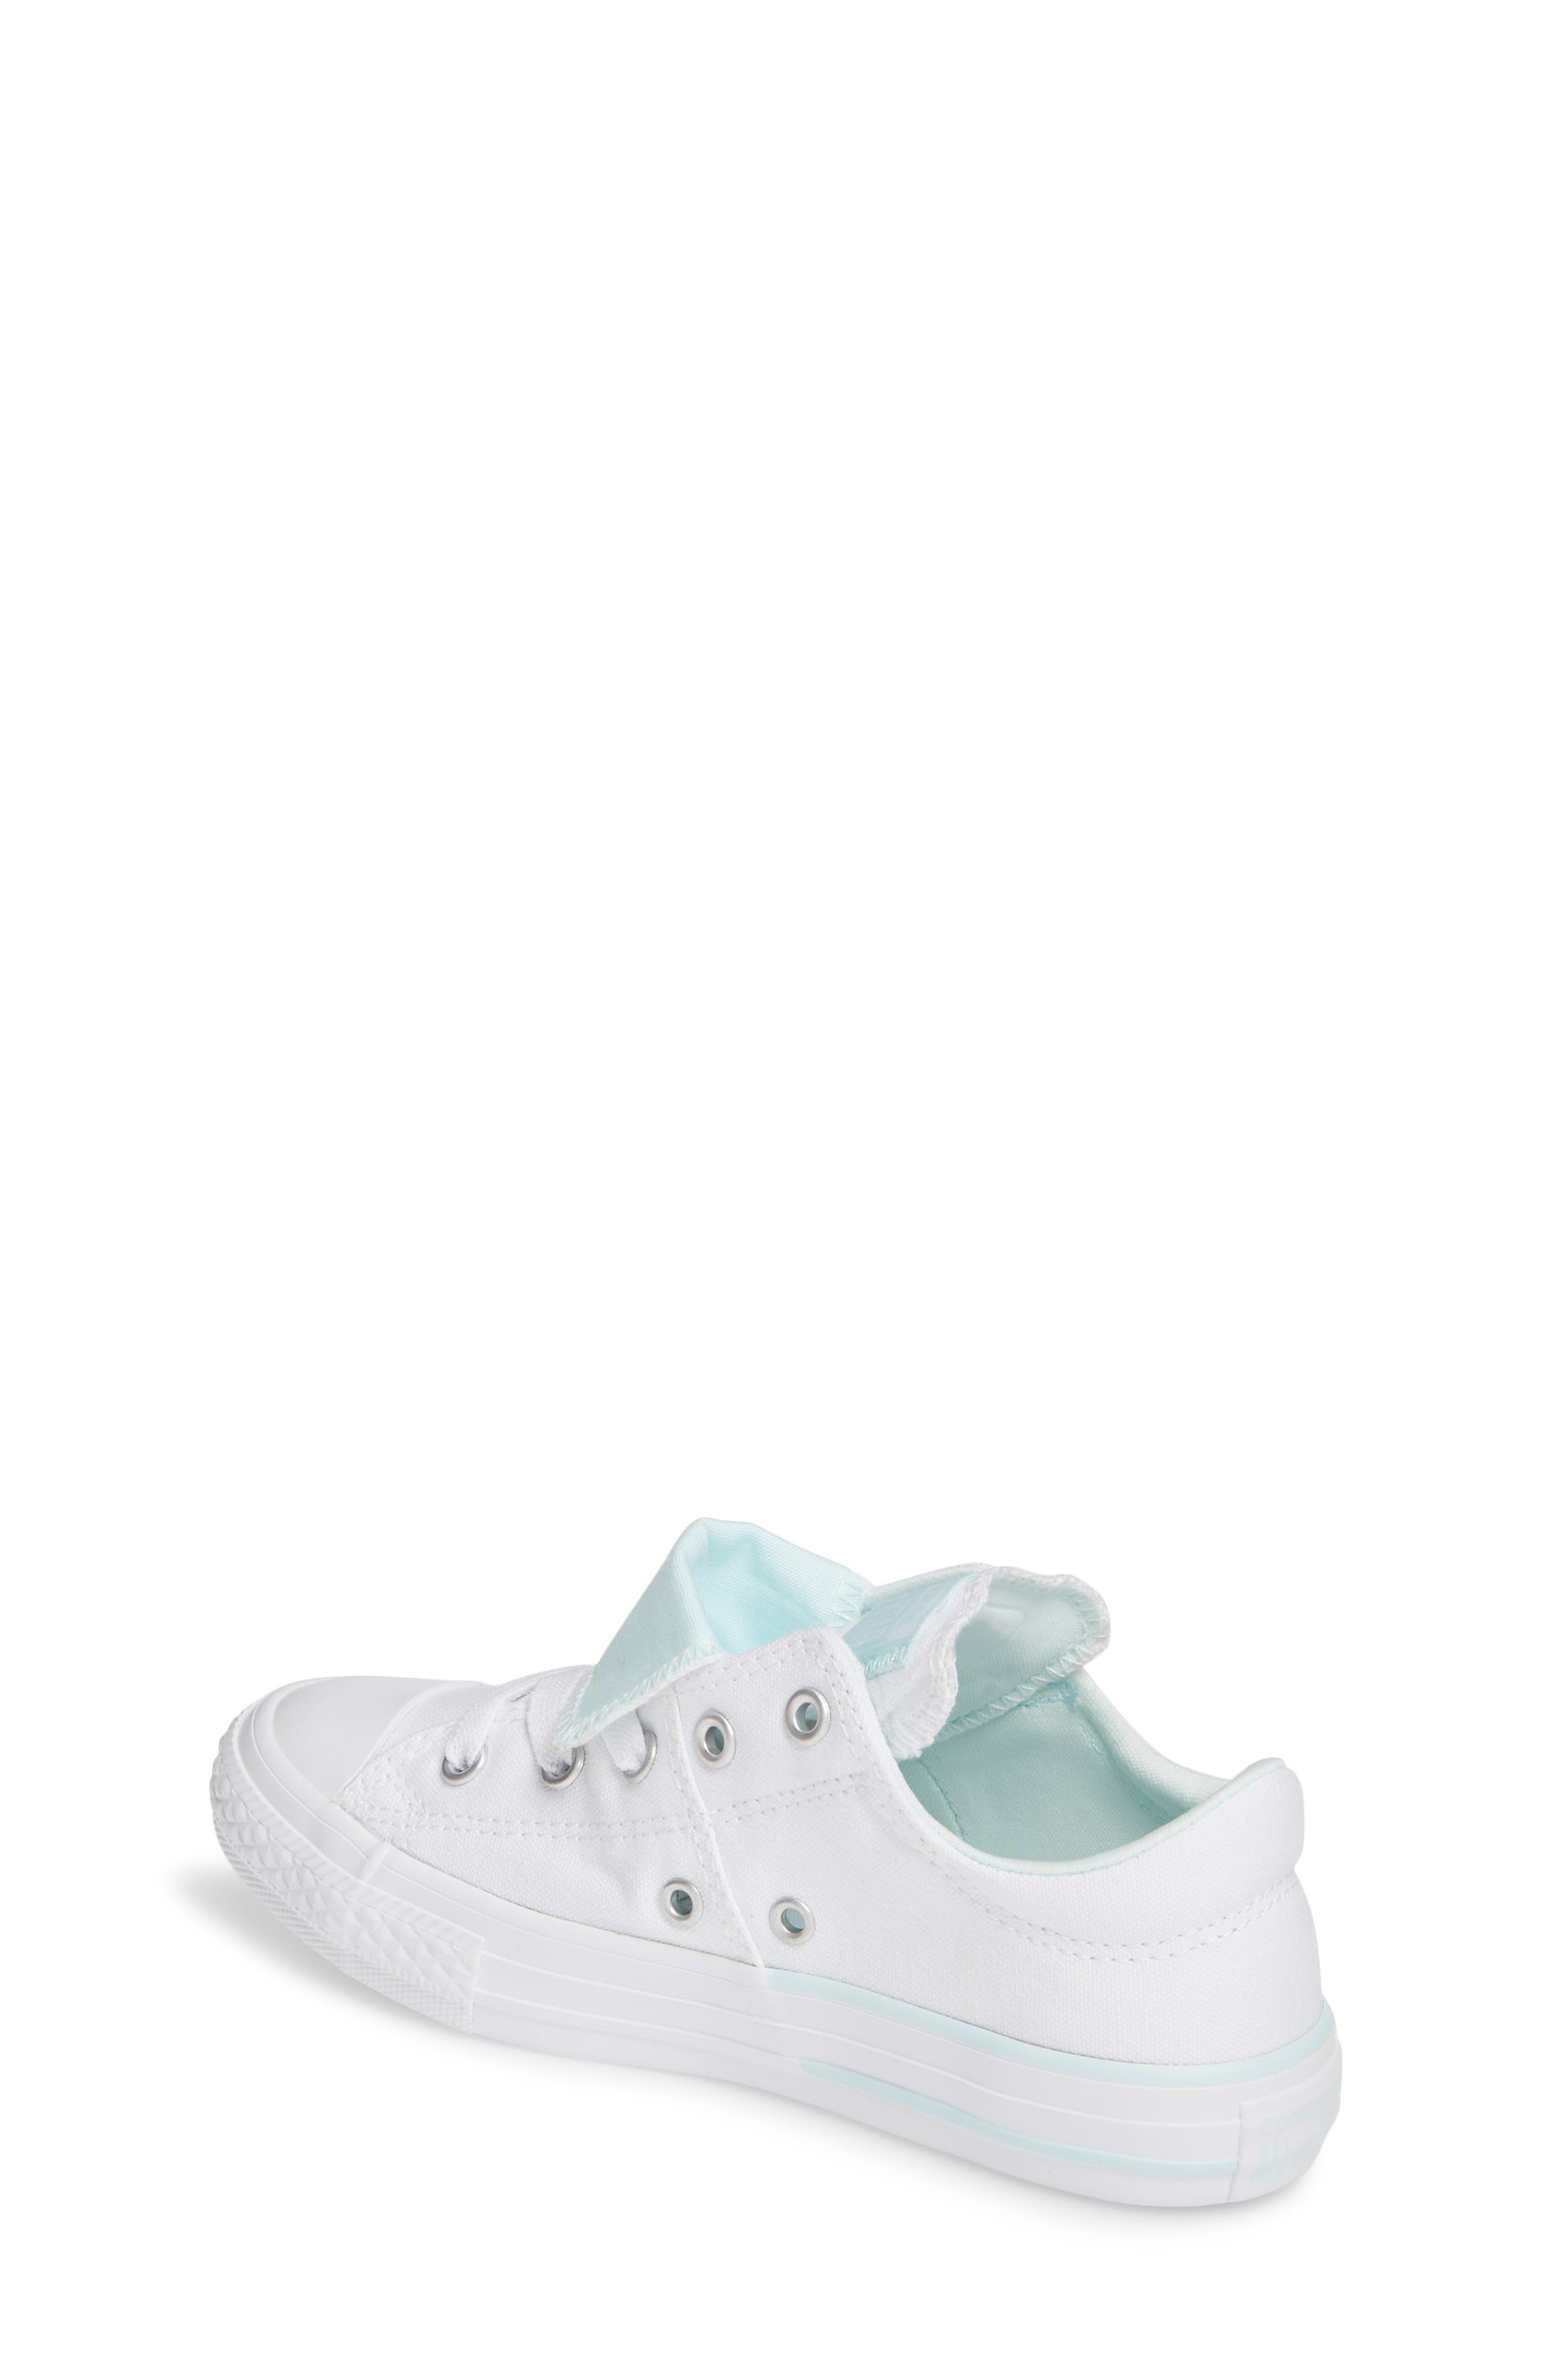 ,                             Chuck Taylor<sup>®</sup> All Star<sup>®</sup> Maddie Double Tongue Sneaker,                             Alternate thumbnail 68, color,                             102